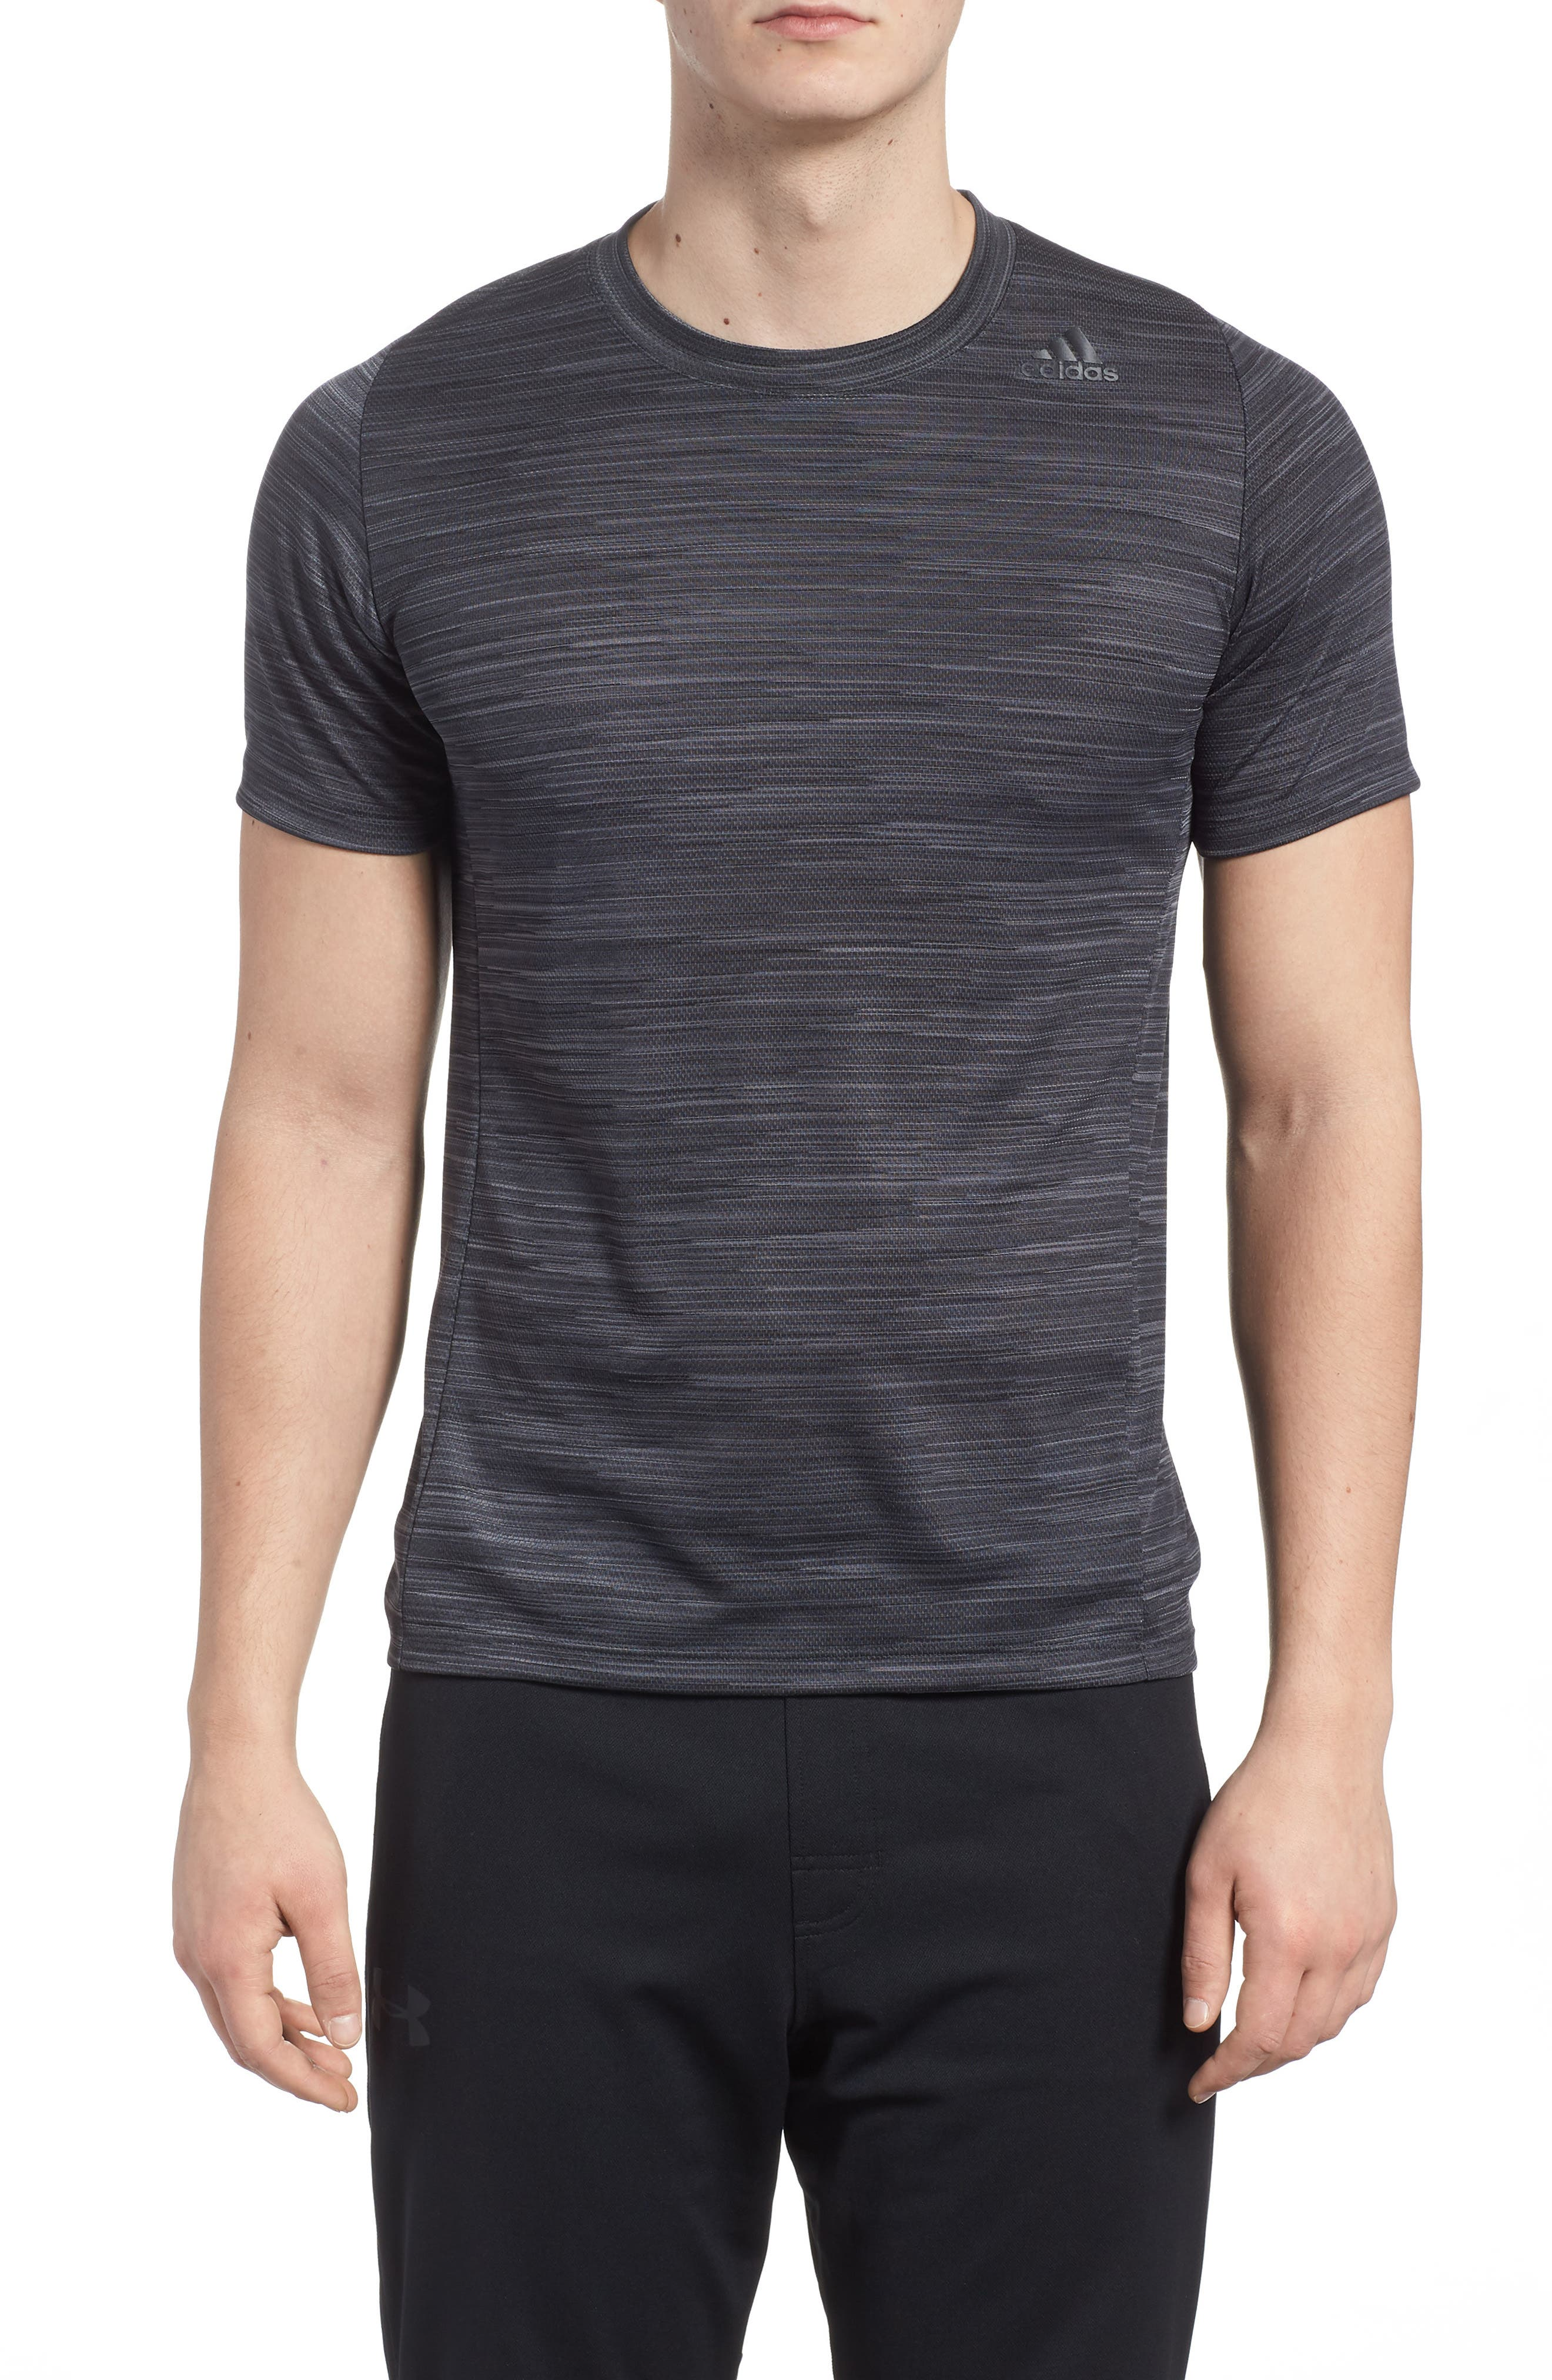 Ultimate Tech T-Shirt,                         Main,                         color, Carbon